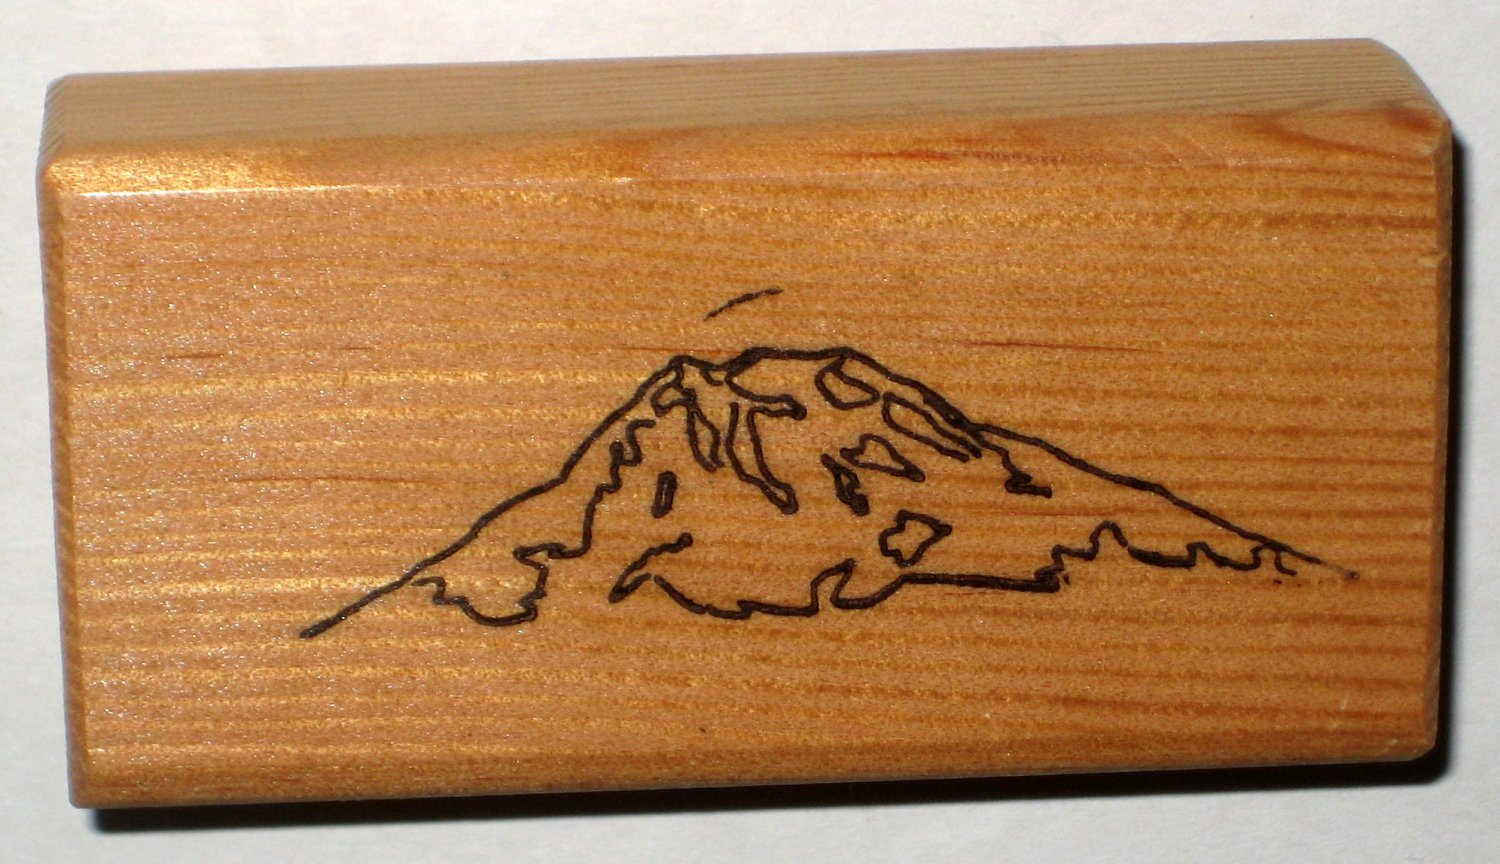 Mountain Mountainside Rubber Stamp Stamper Wood Mounted